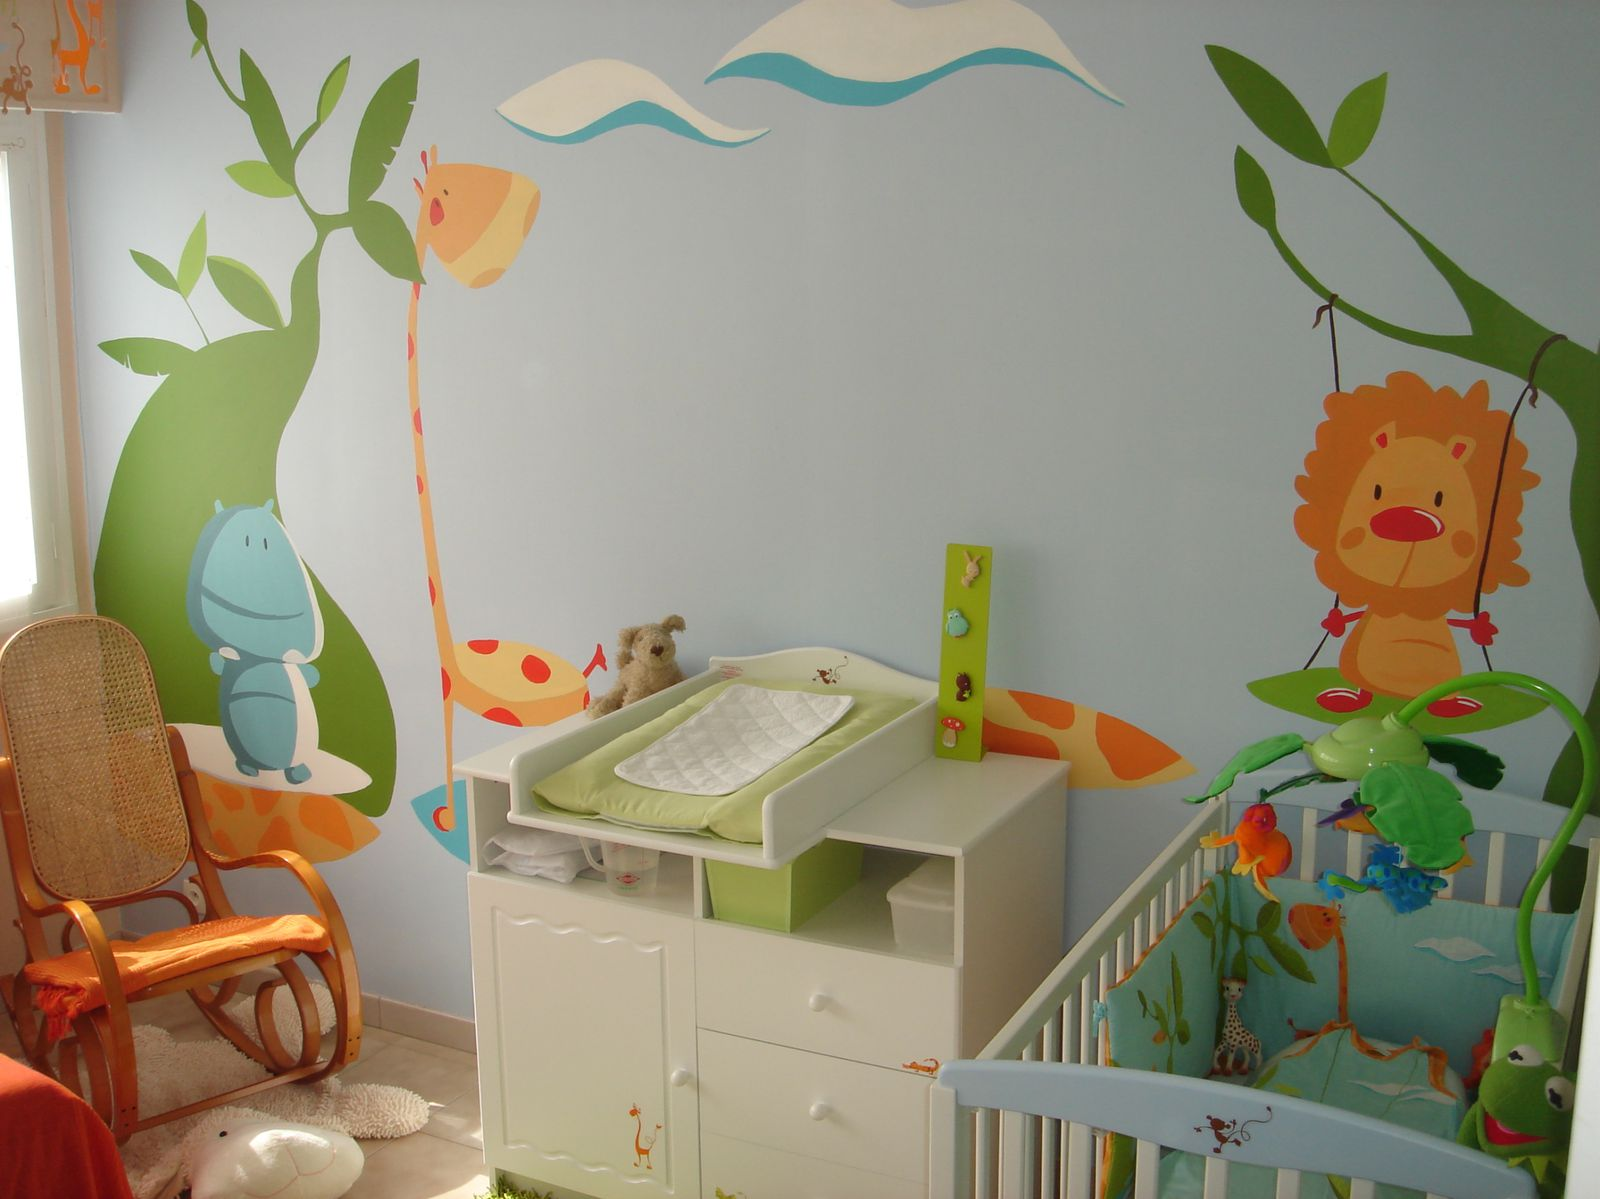 Photos bild galeria decoration murale chambre bebe - Decoratie murale chambre bebe ...